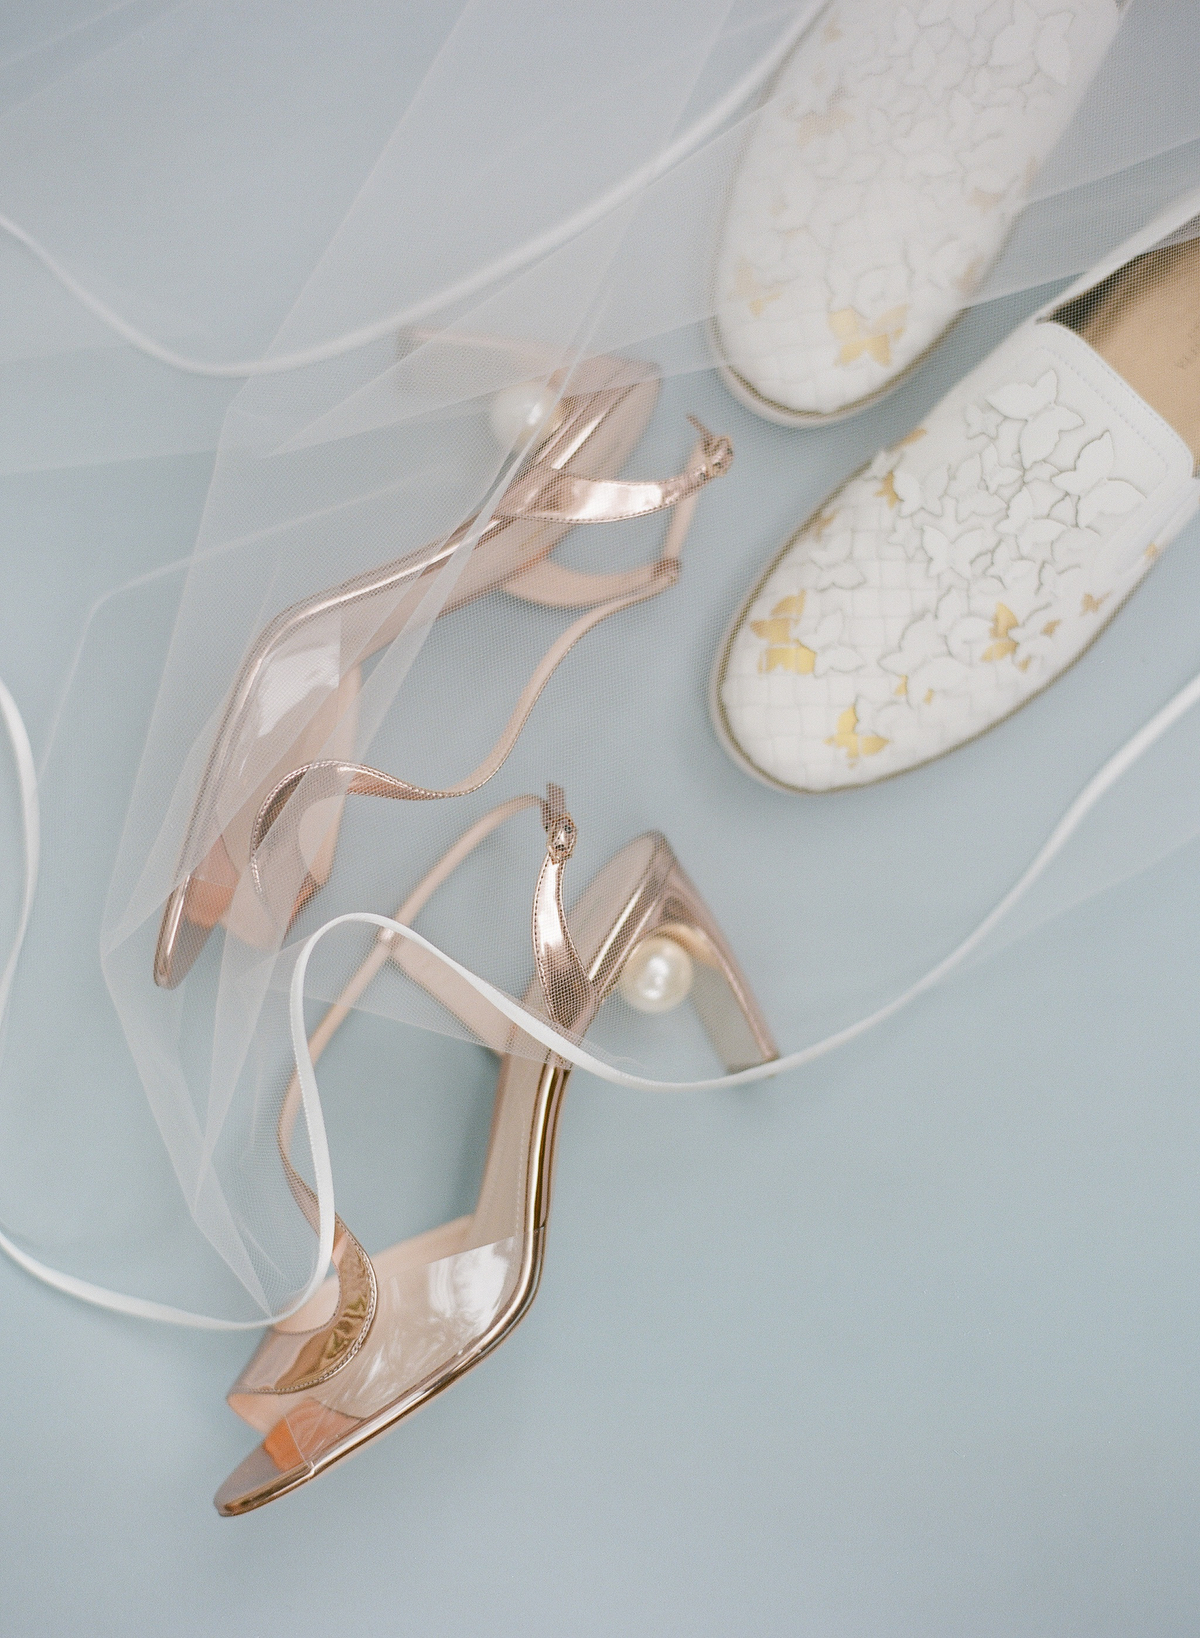 nadine dan wedding brides rose gold and white shoes